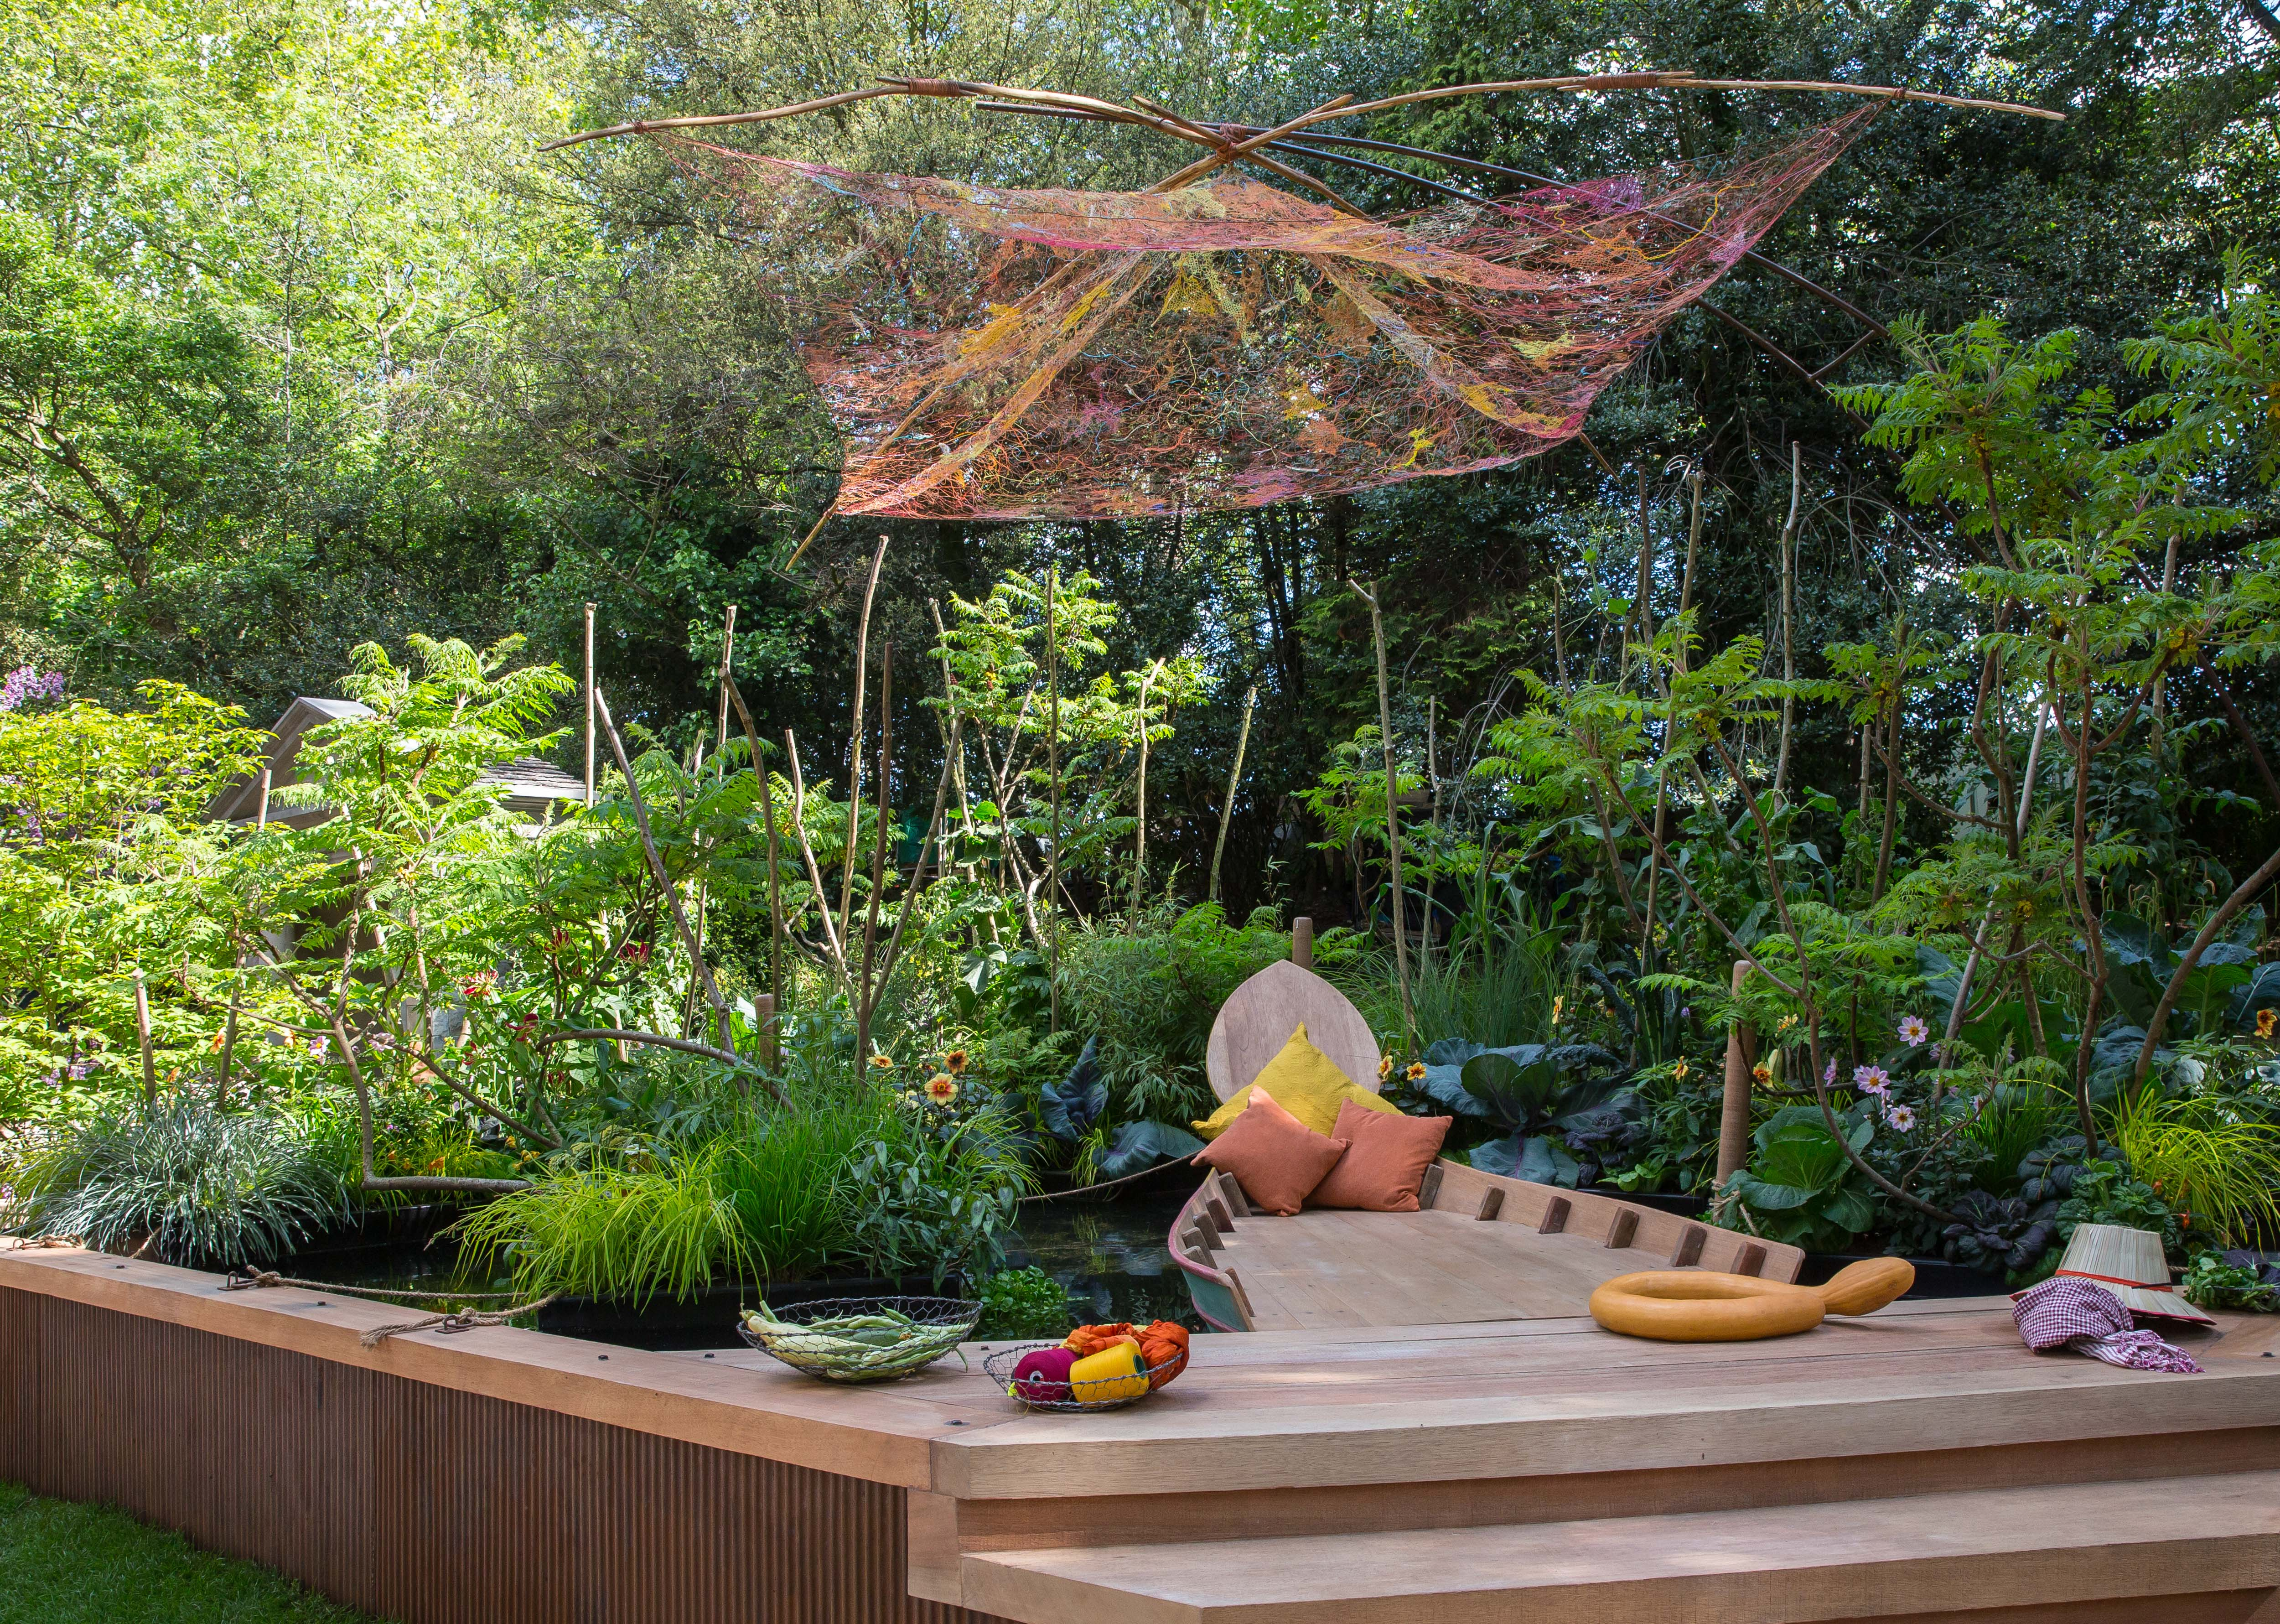 viking cruises to return to rhs chelsea flower show - cruise